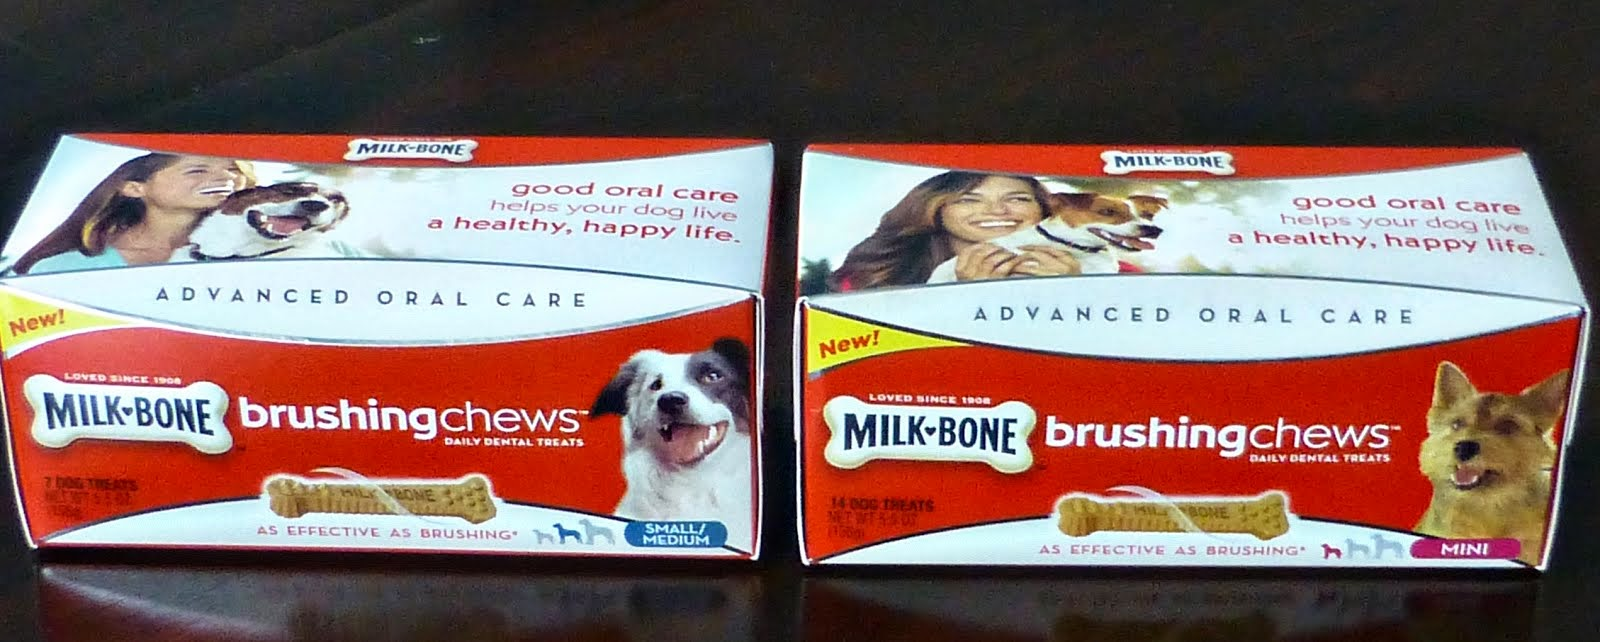 Enter To Win Milk-Bone Brushing Chews + $25 Visa